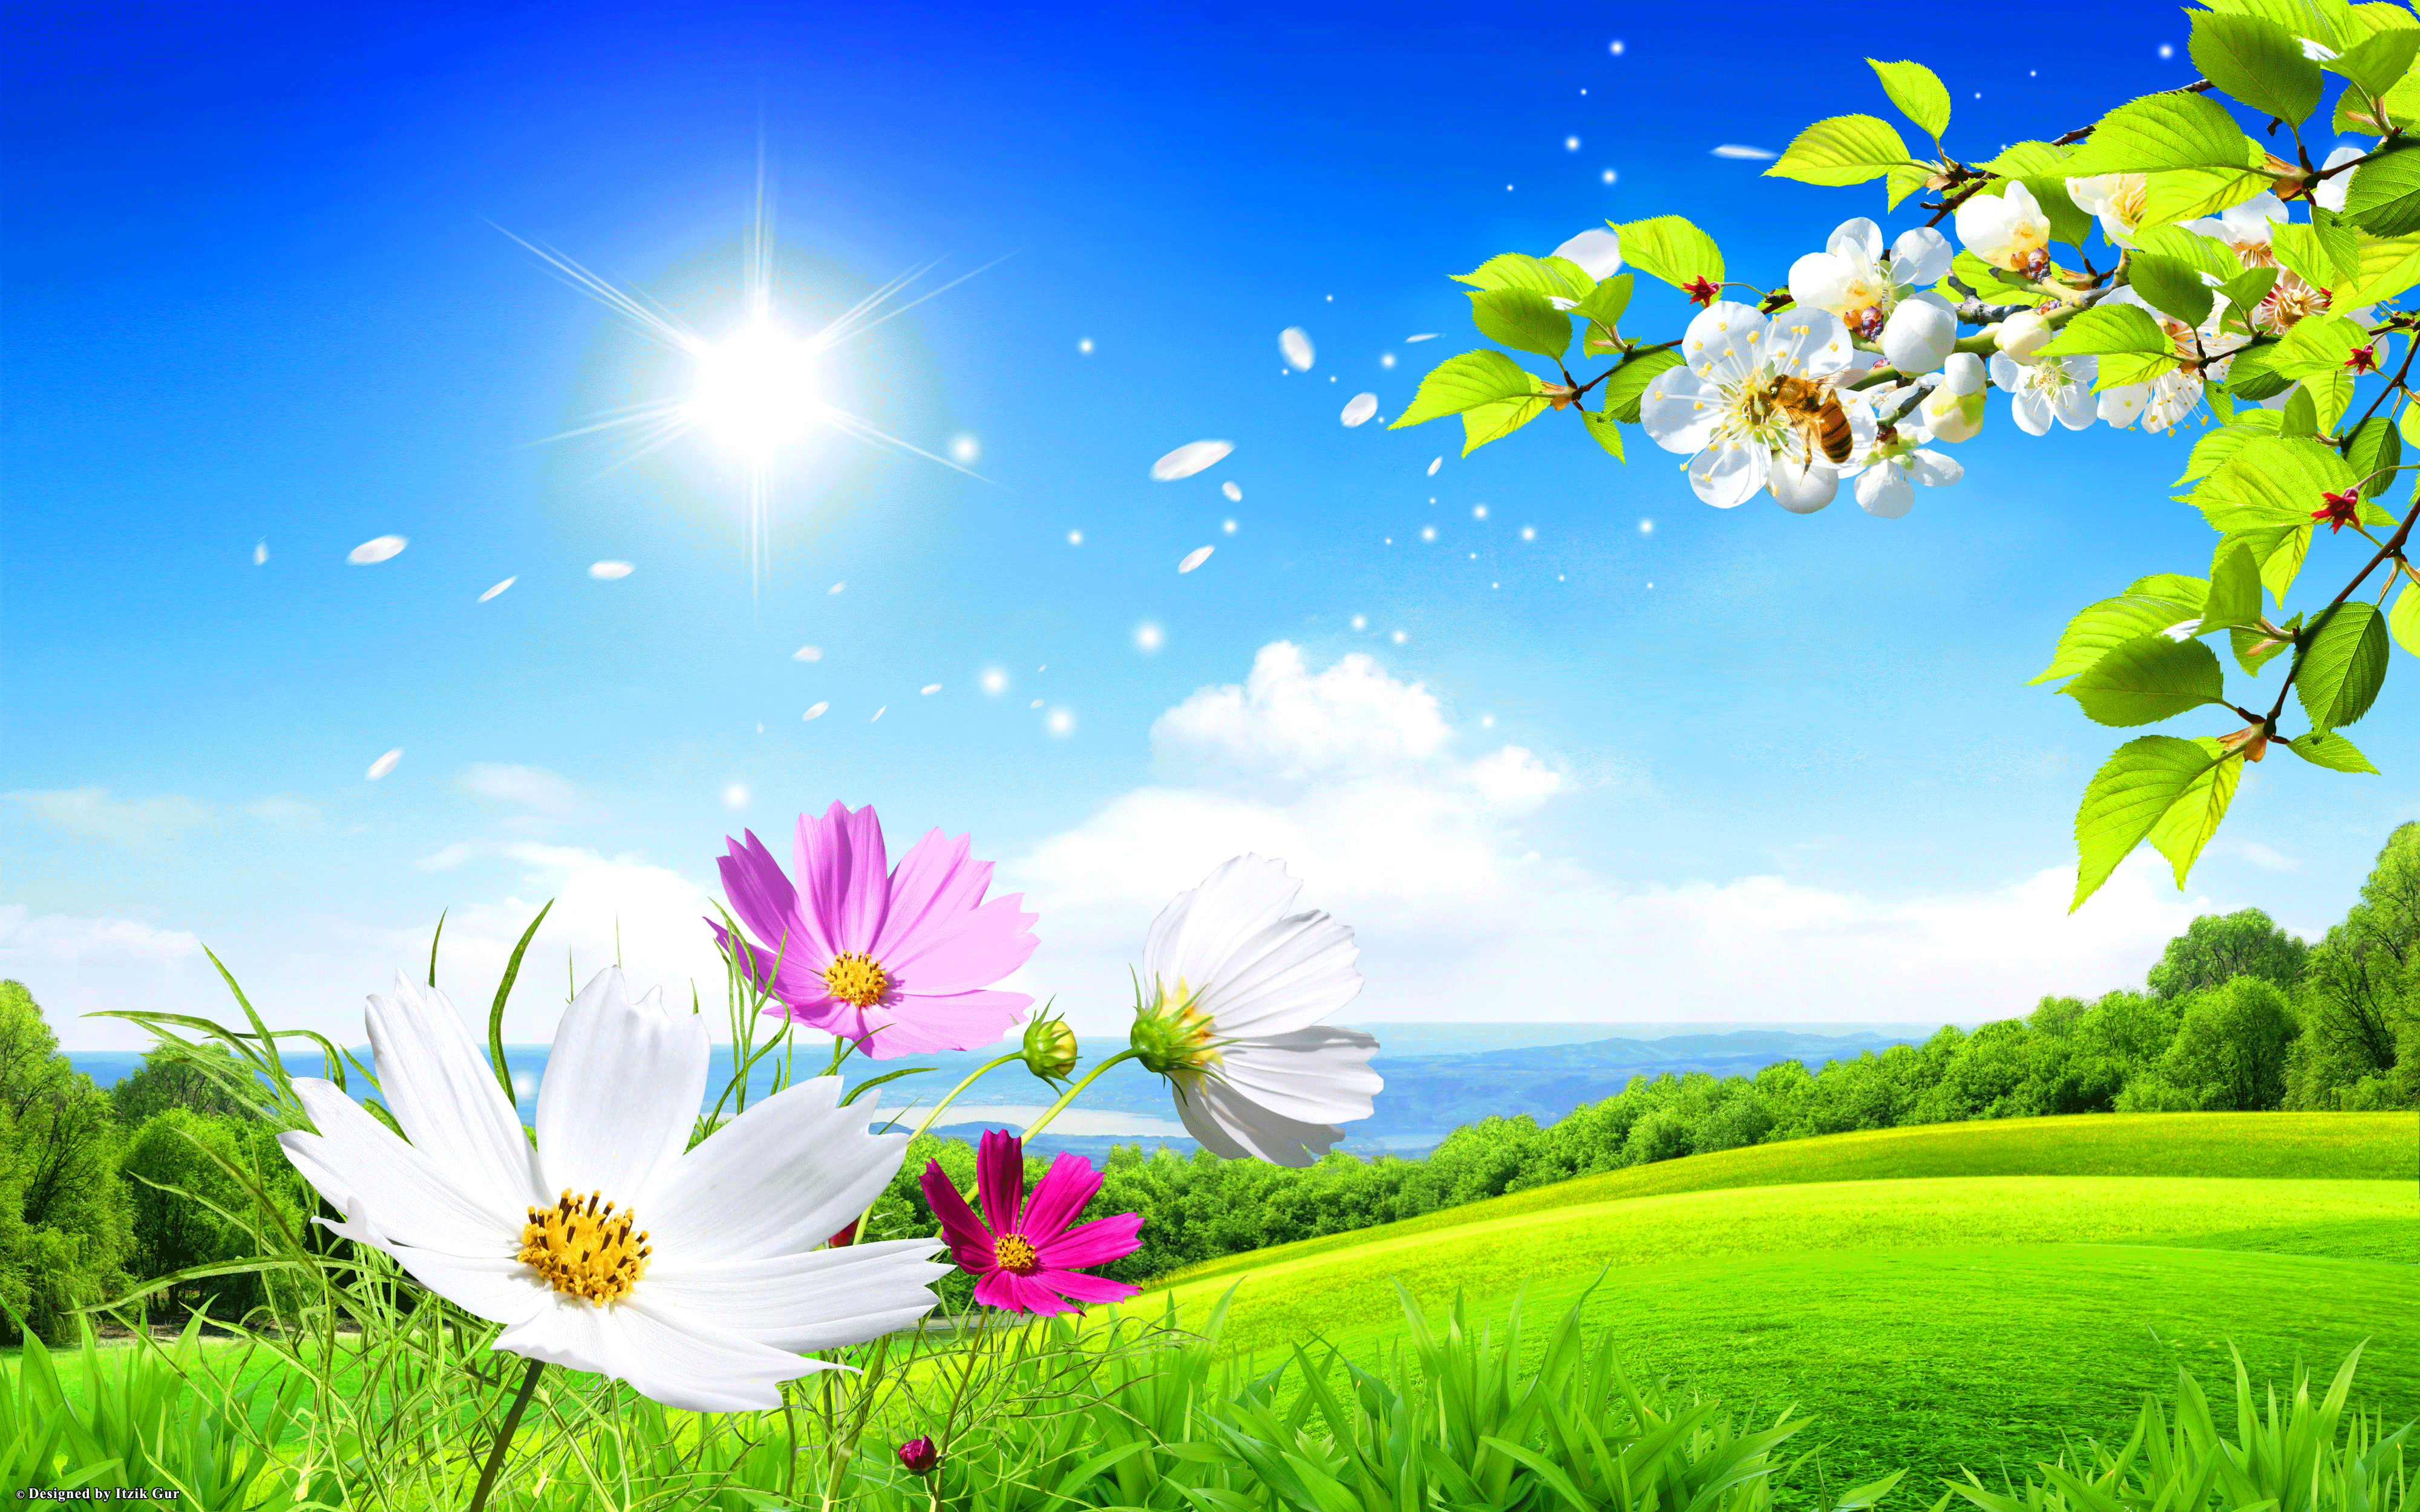 spring wallpaper hd pc